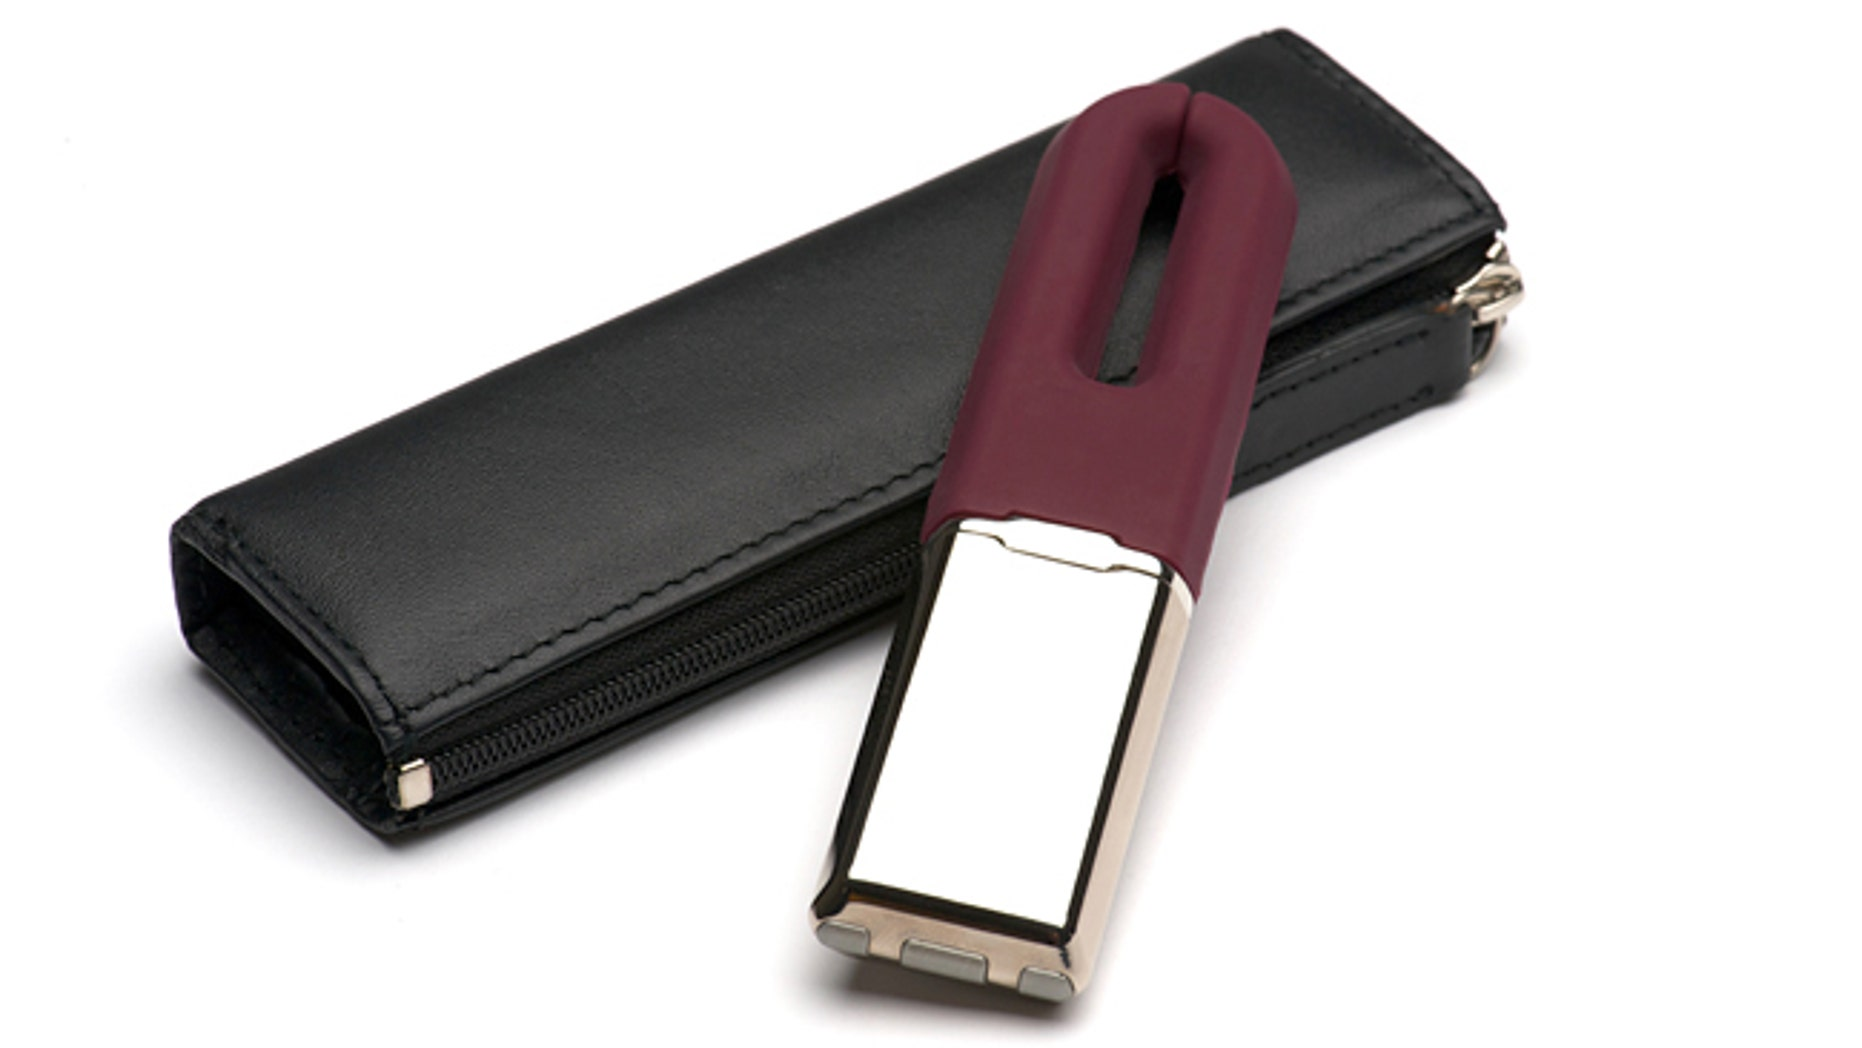 The Duet USB drive vibrator, which has already gained more than $40,000 in crowd-funding.